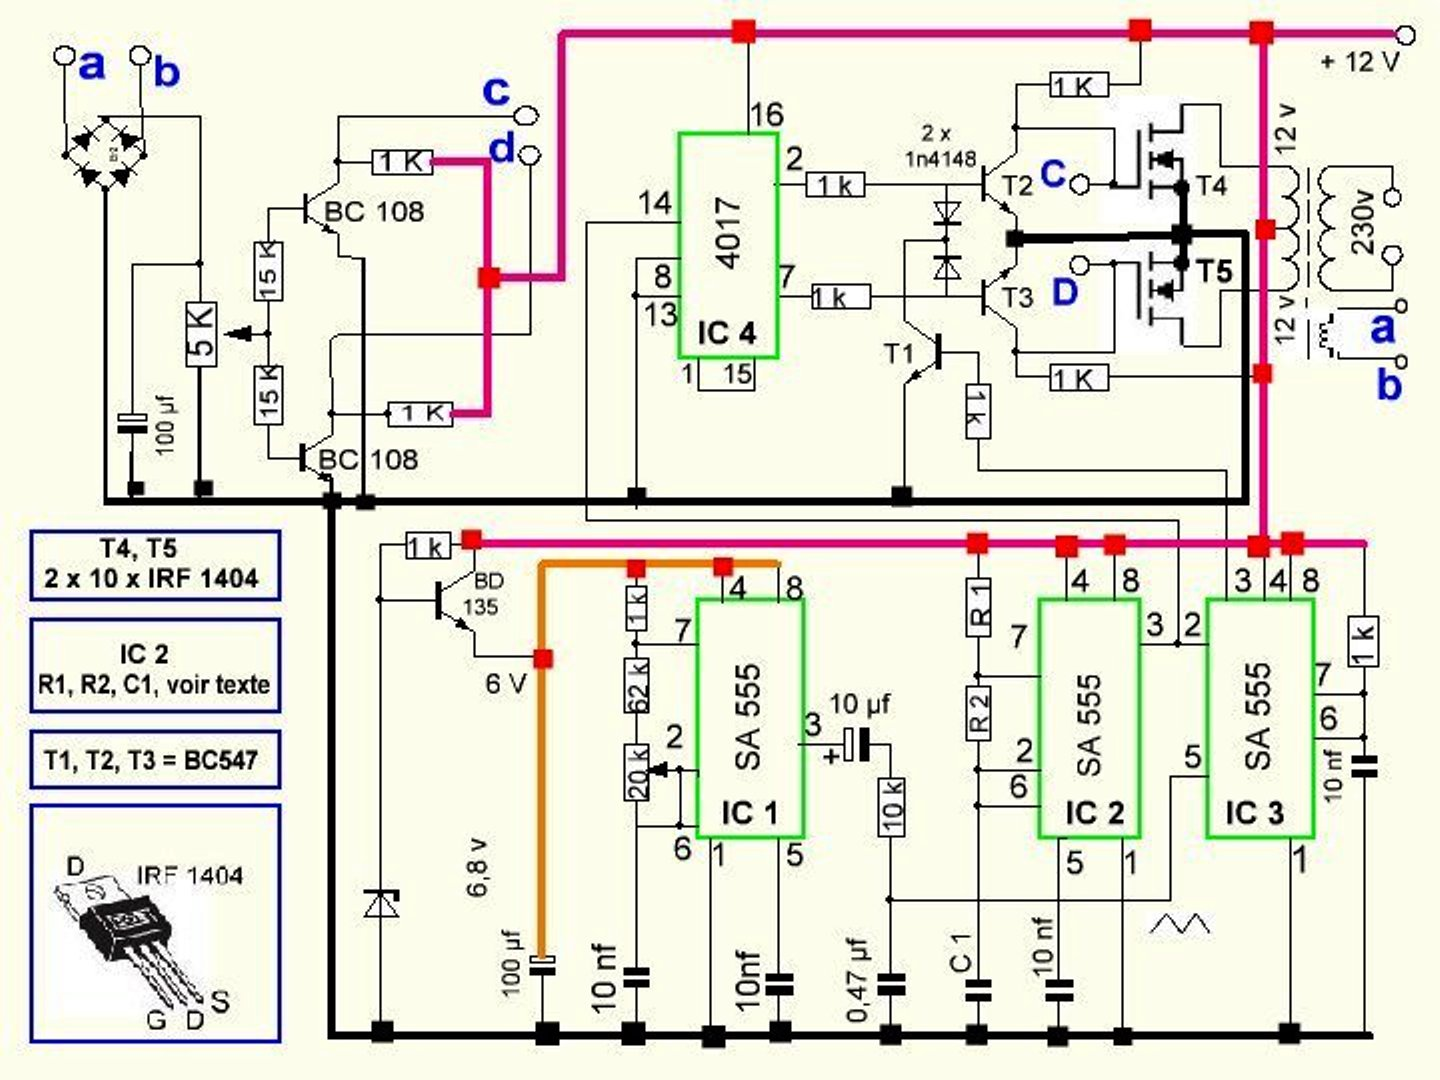 Inverter Circuit Diagrams 1000w Pdf Wiring Library How To Build A Homemade Power 100 Watt 300 Watts Pwm Controlled Pure Sine Wave